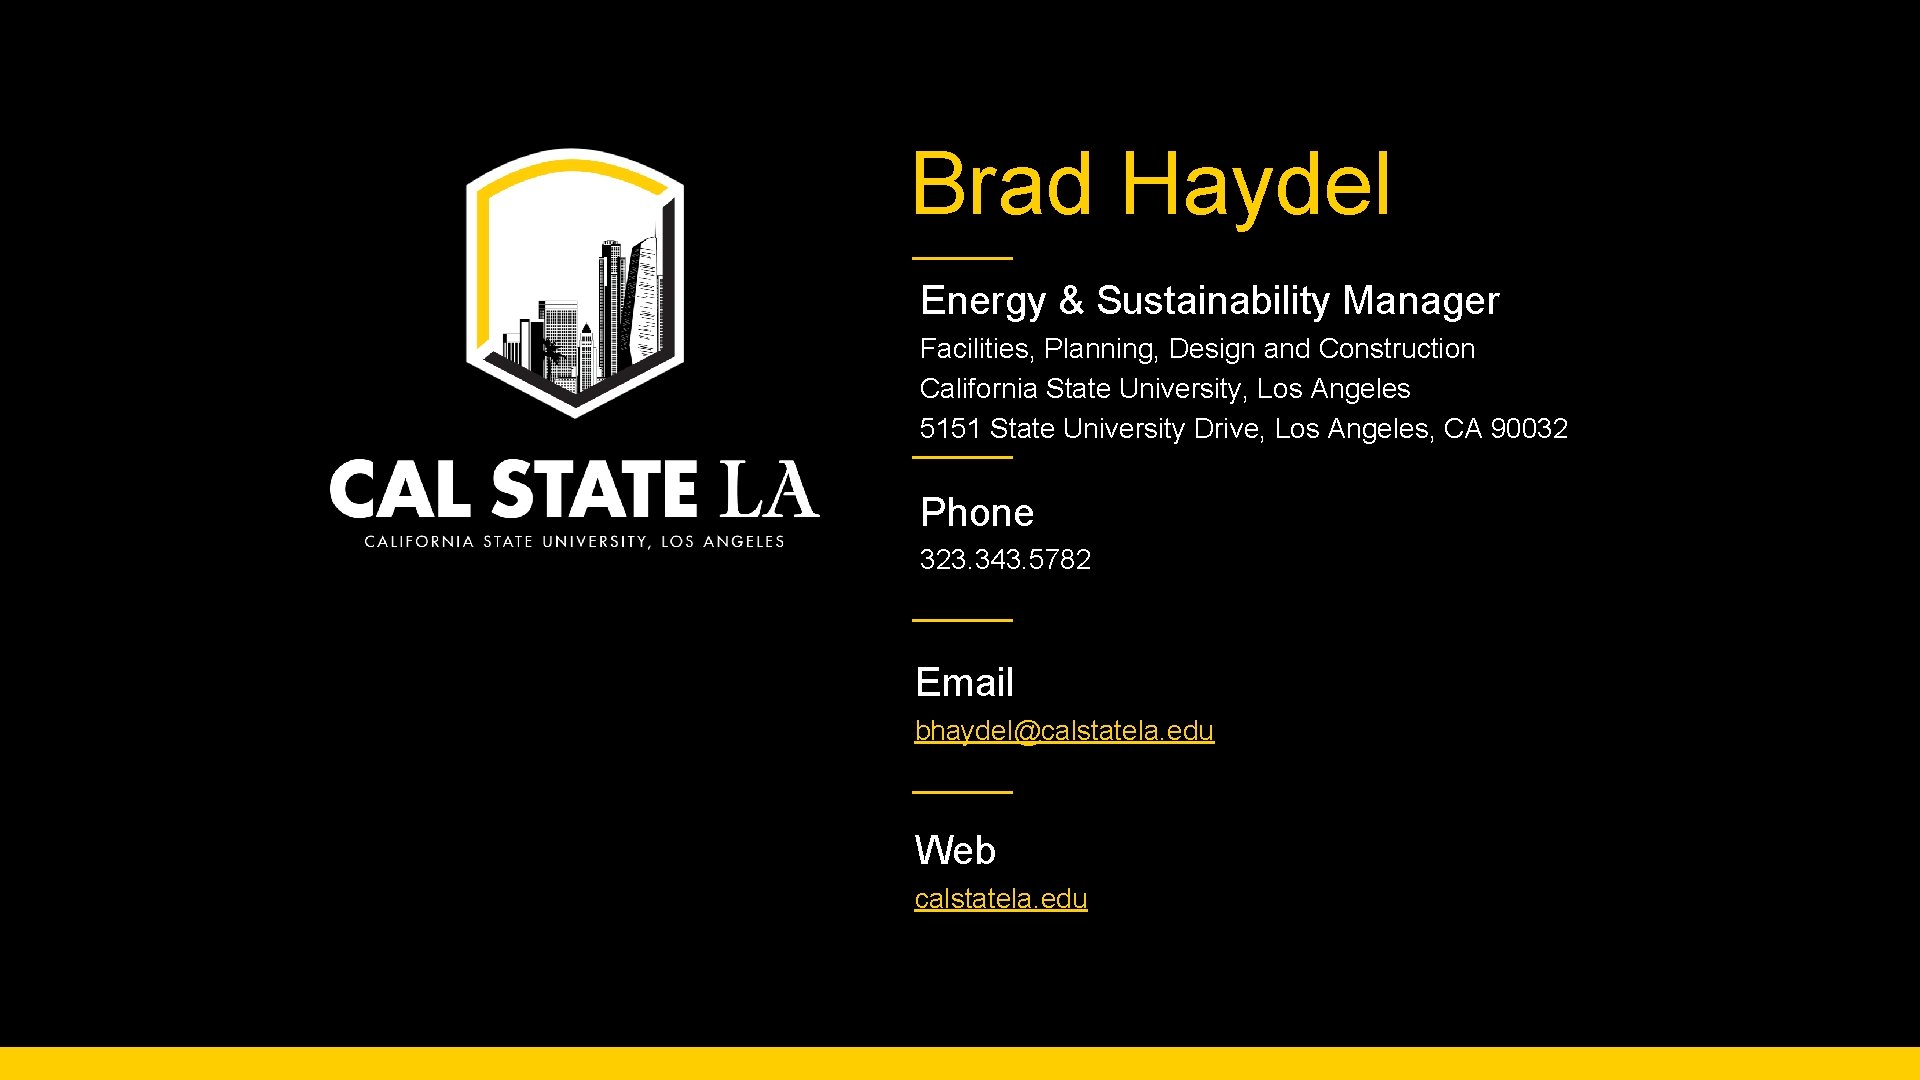 Brad Haydel Energy & Sustainability Manager Facilities, Planning, Design and Construction California State University,